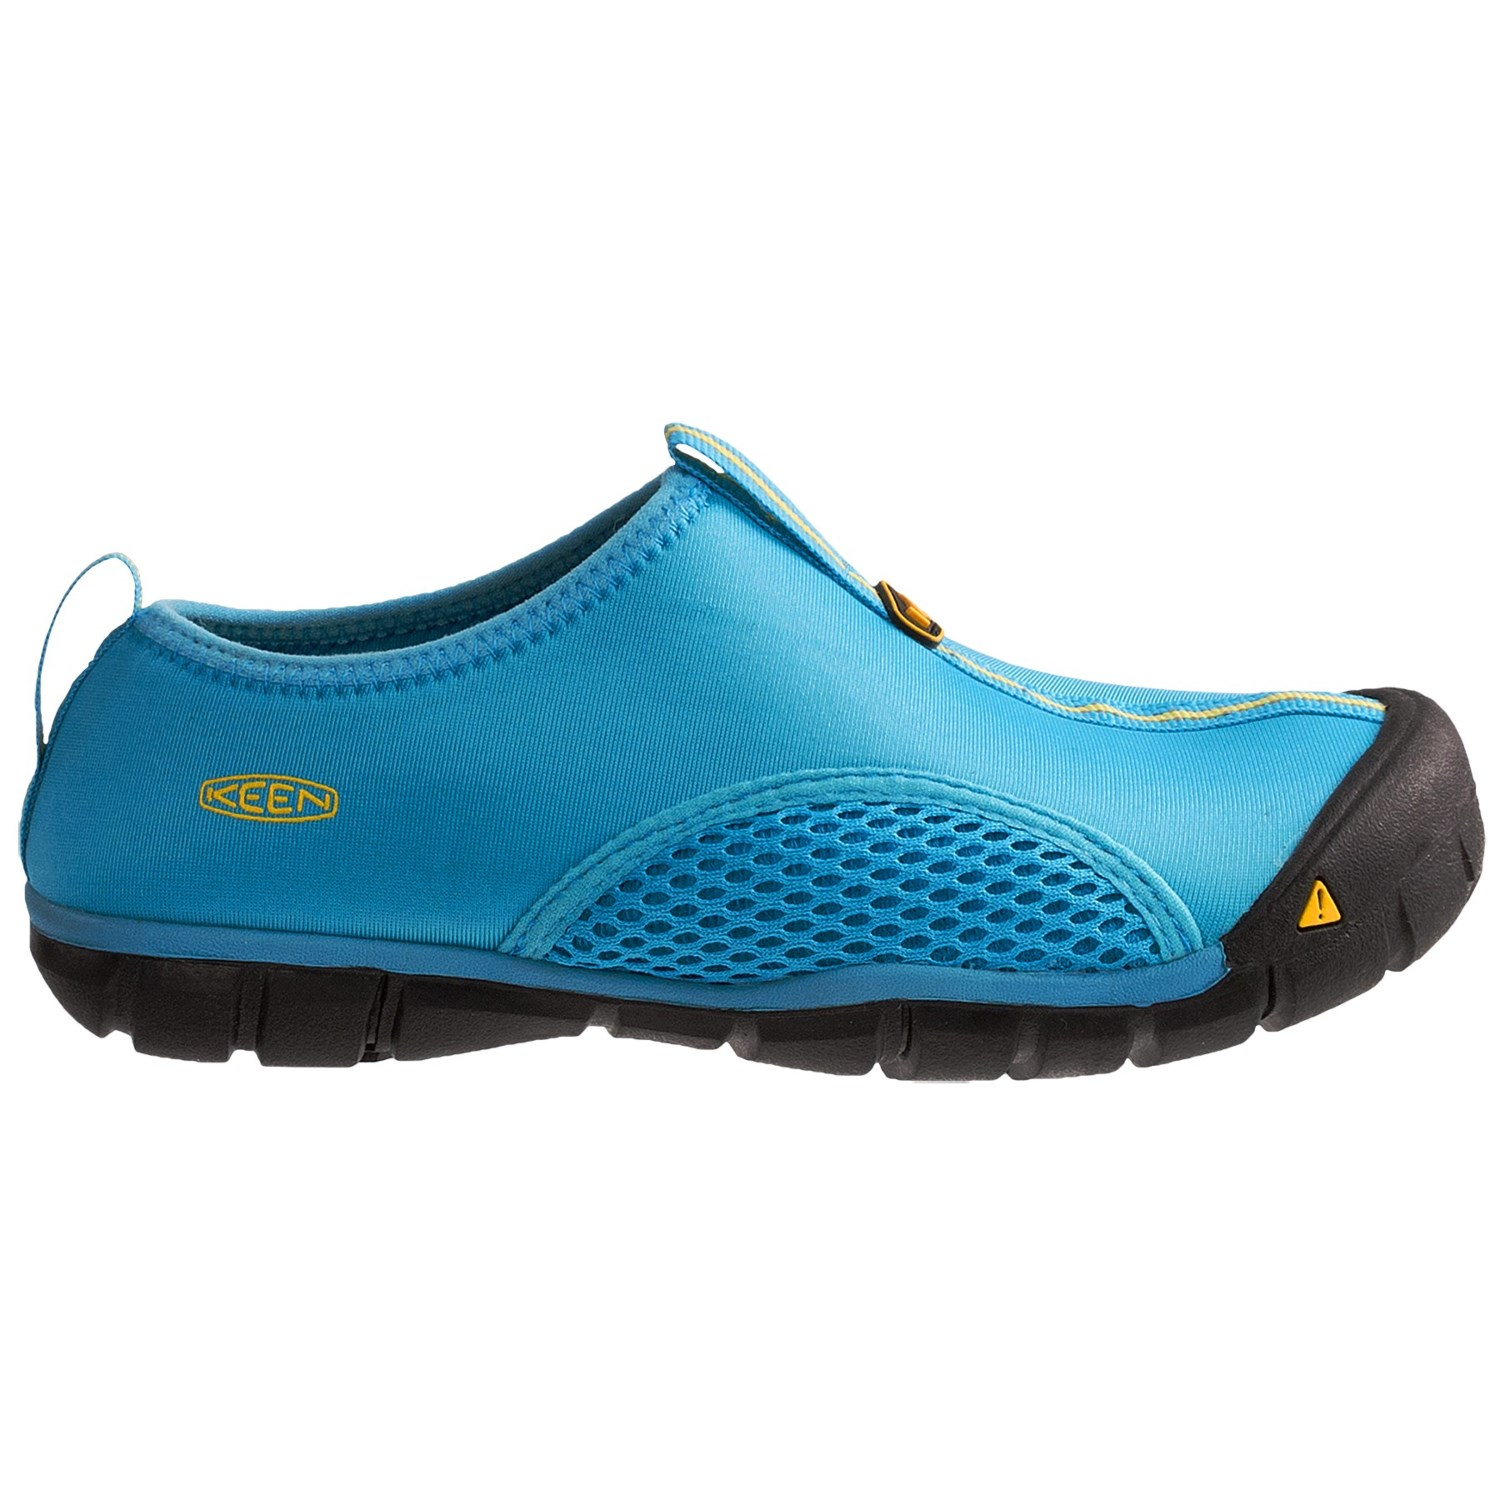 Keen Shoes For Kids Reviews